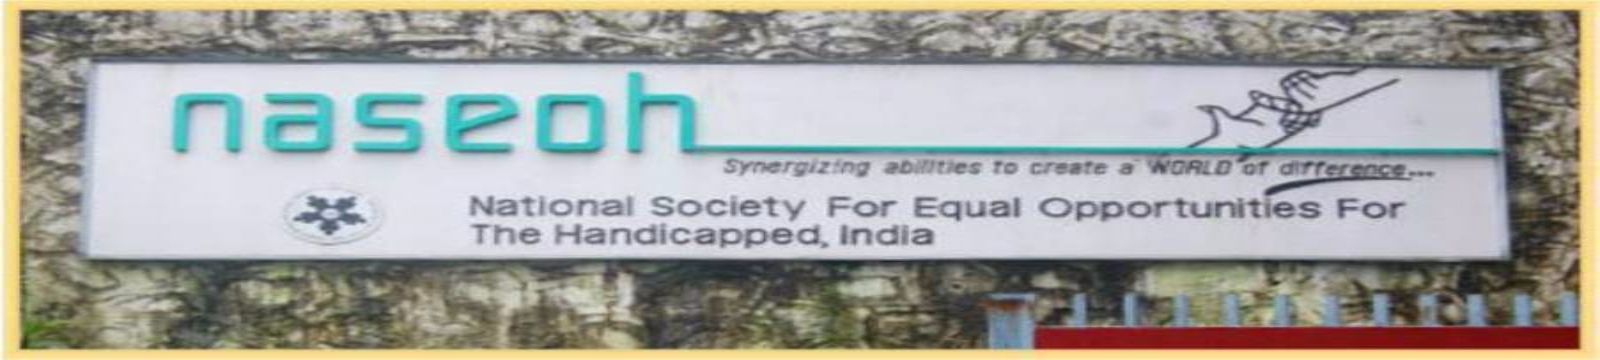 TMM 2019 - National Society For Equal Opportunities For The